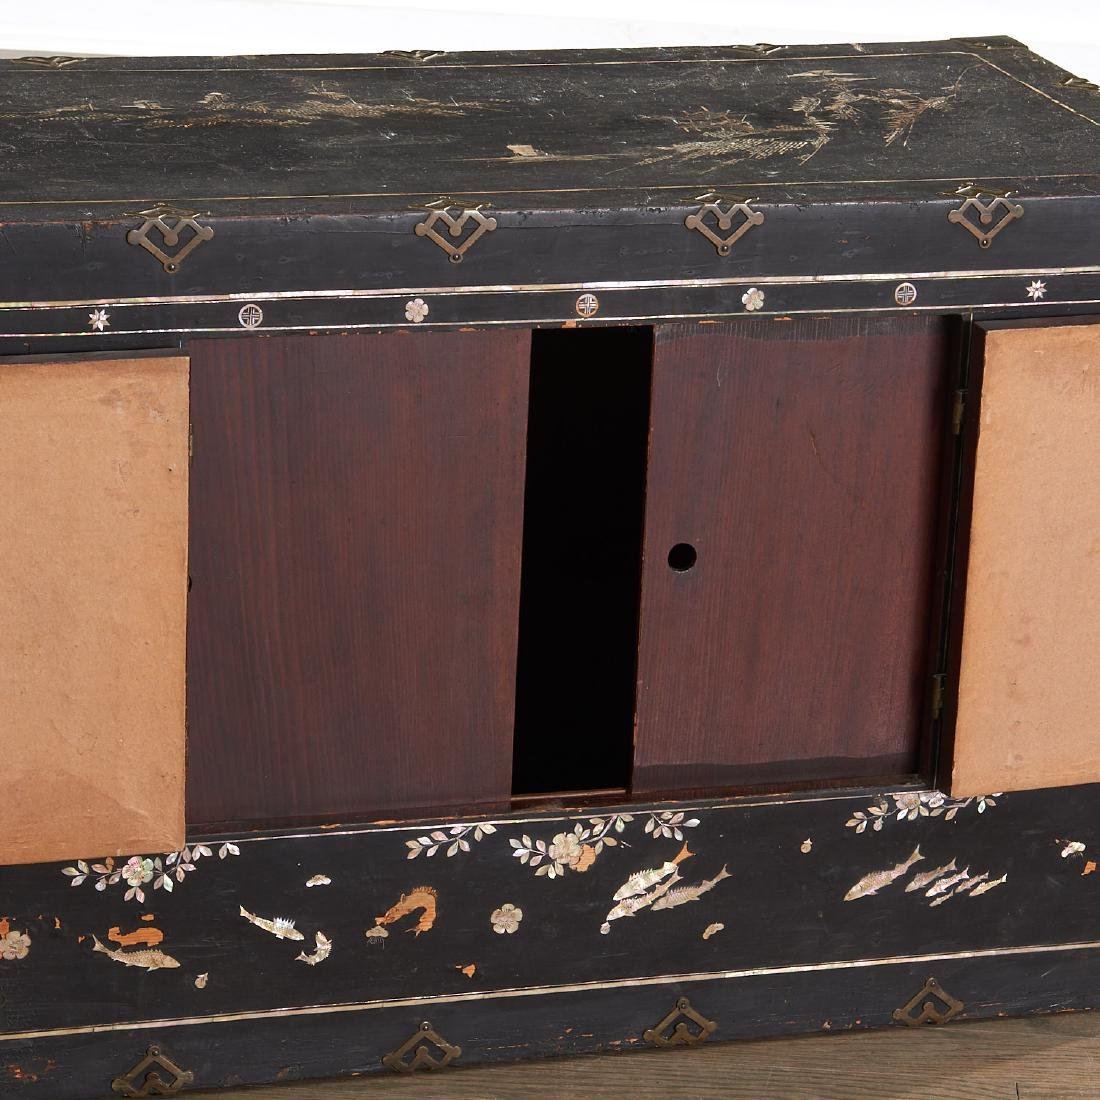 Chinese/Korean mother of pearl inlaid chest - 3